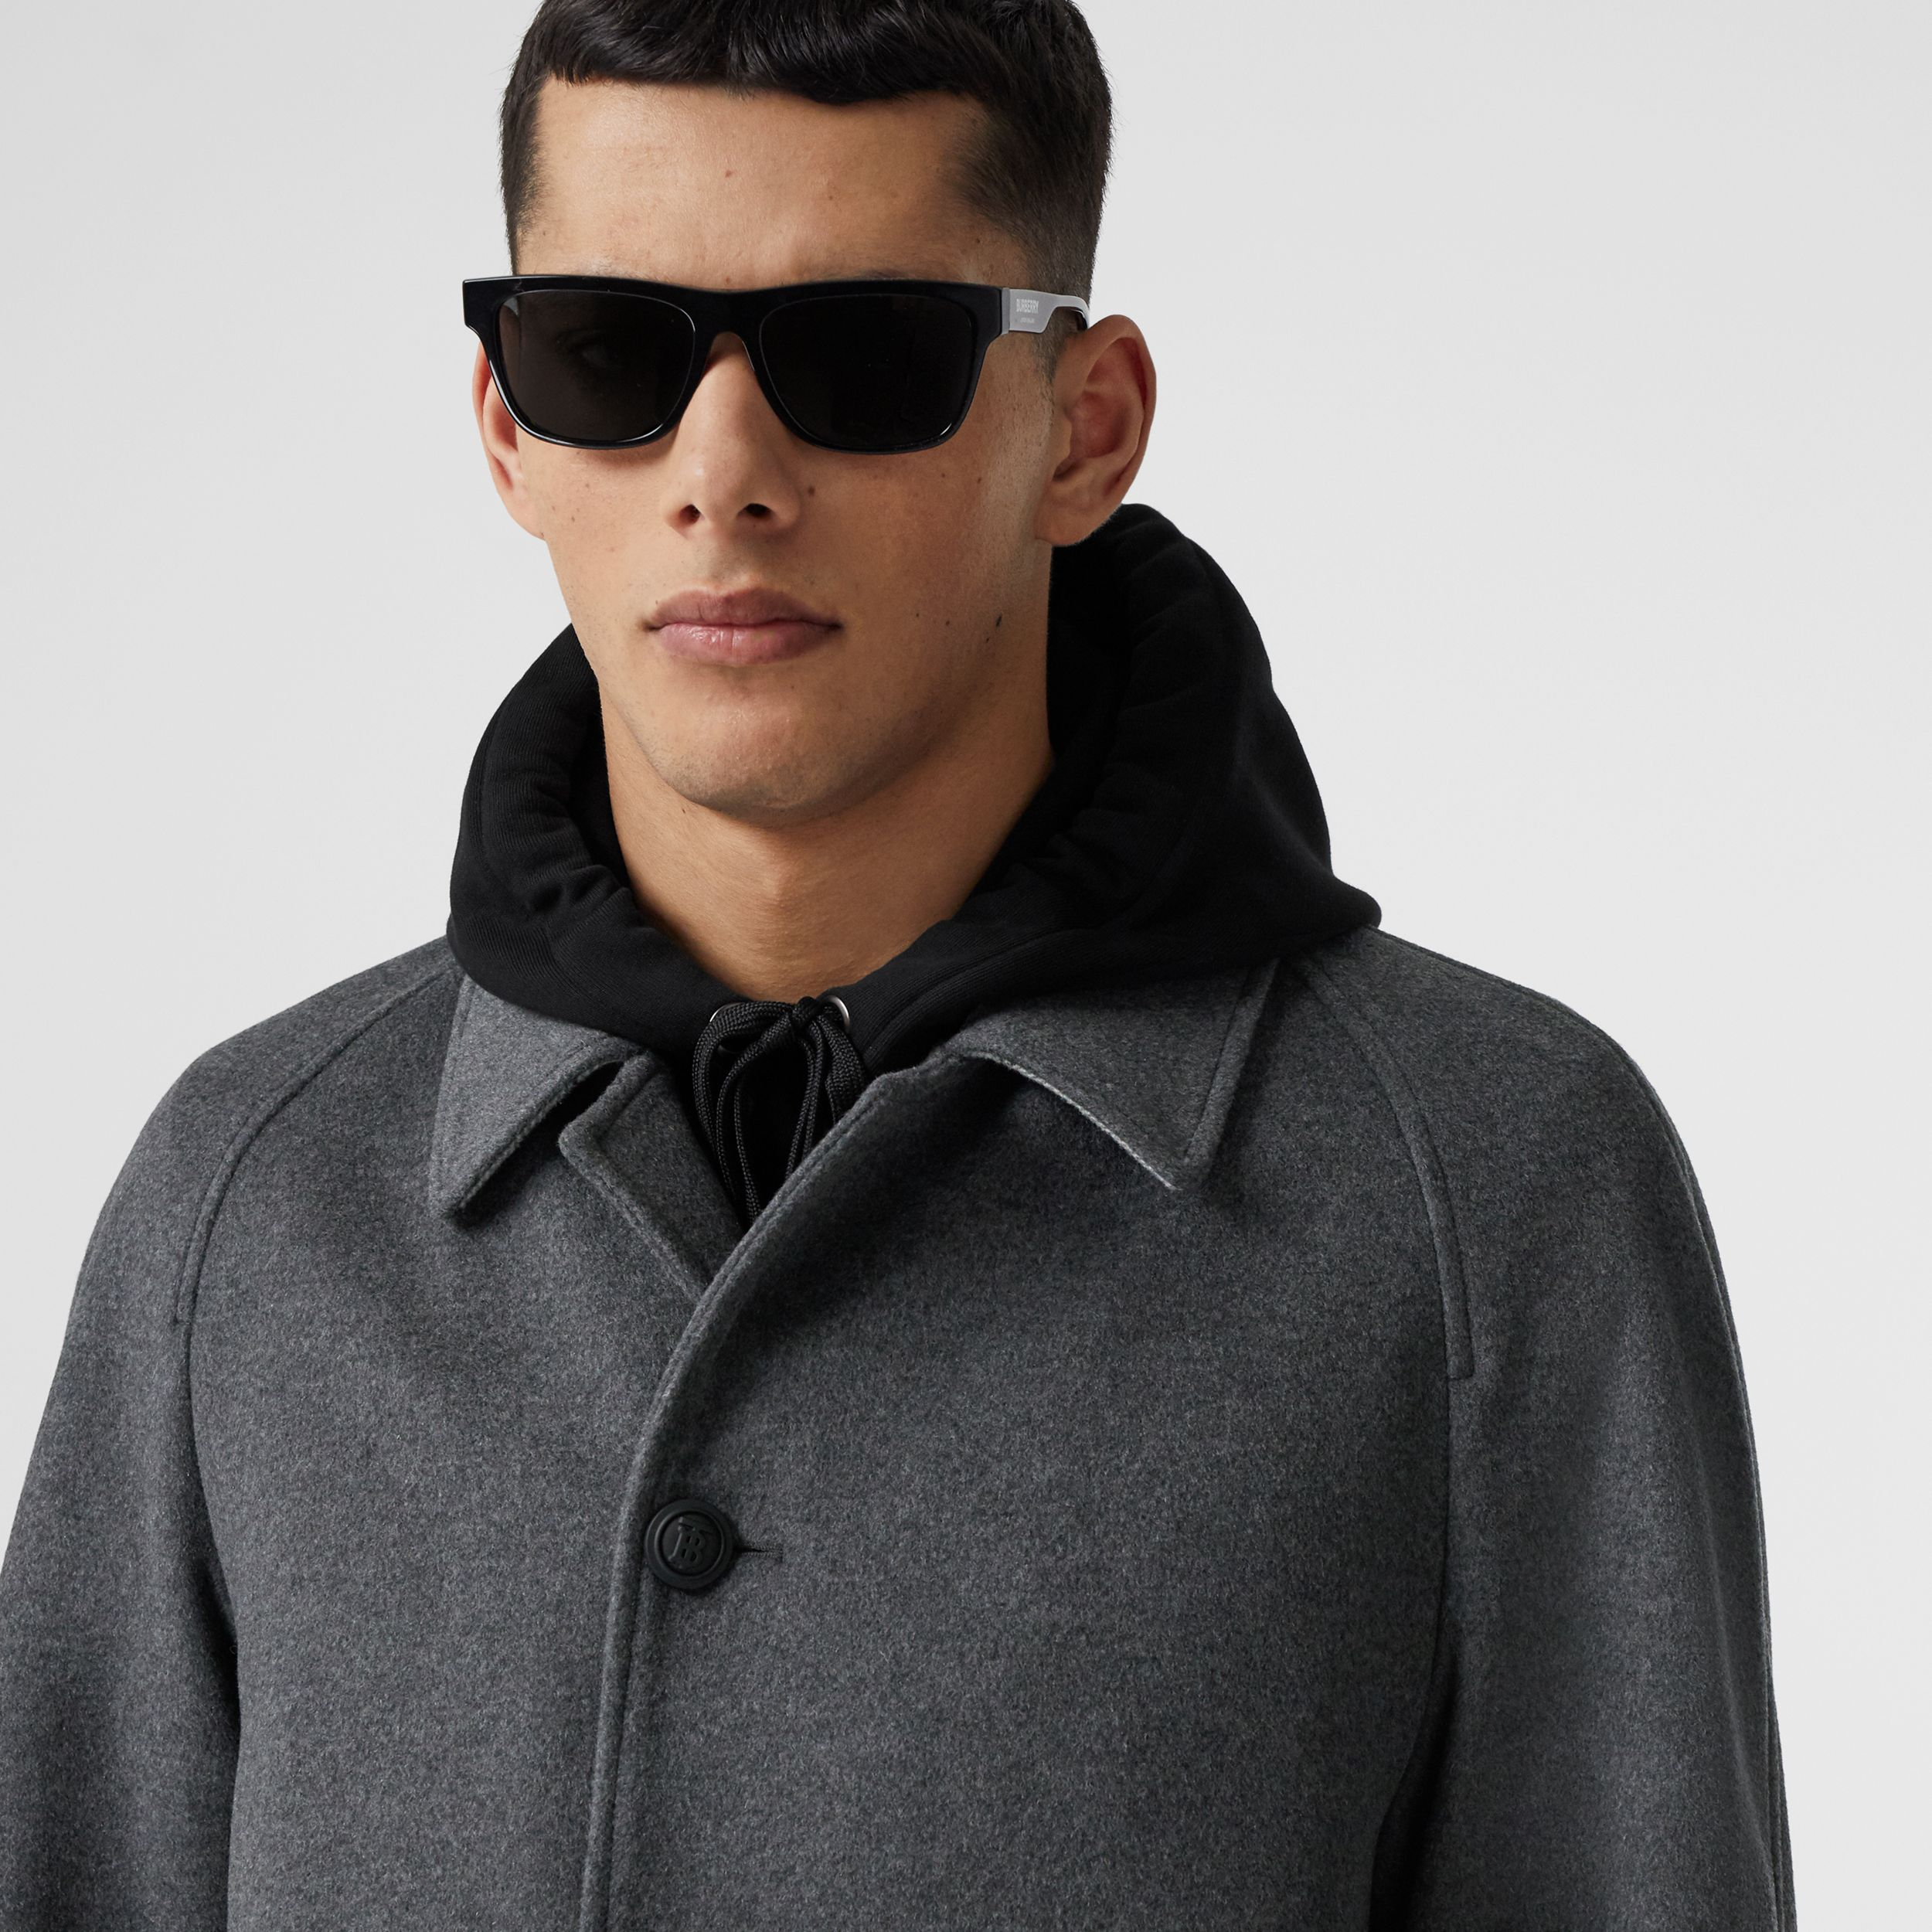 Button Detail Wool Cashmere Car Coat in Charcoal Melange - Men | Burberry - 2